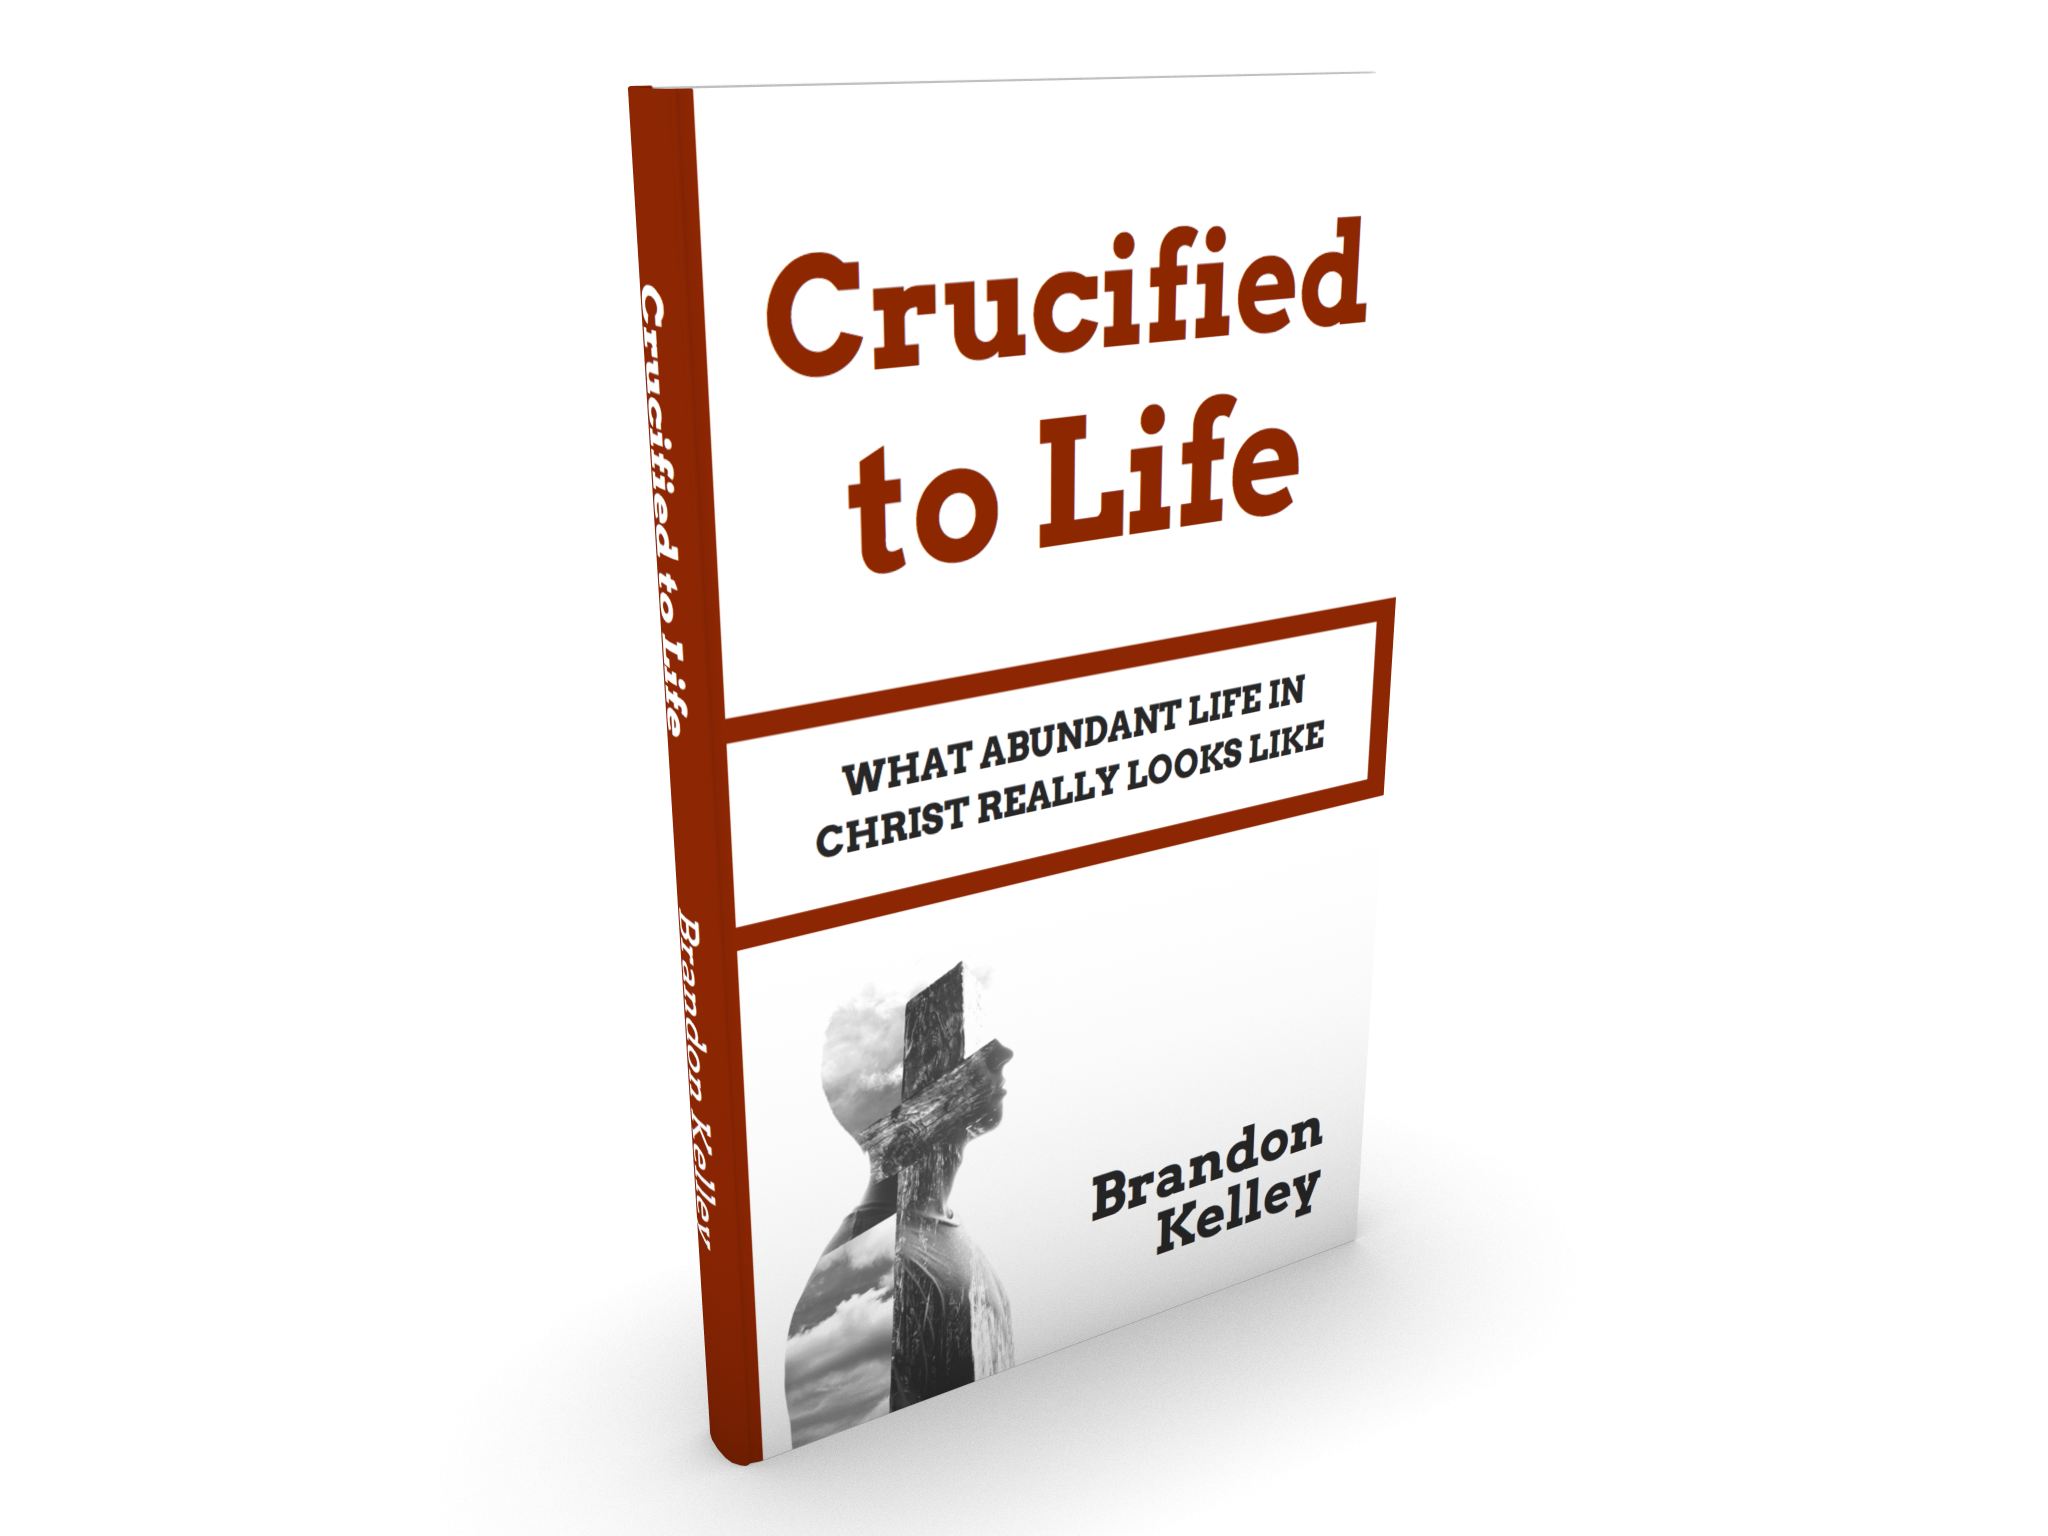 Crucified to Life